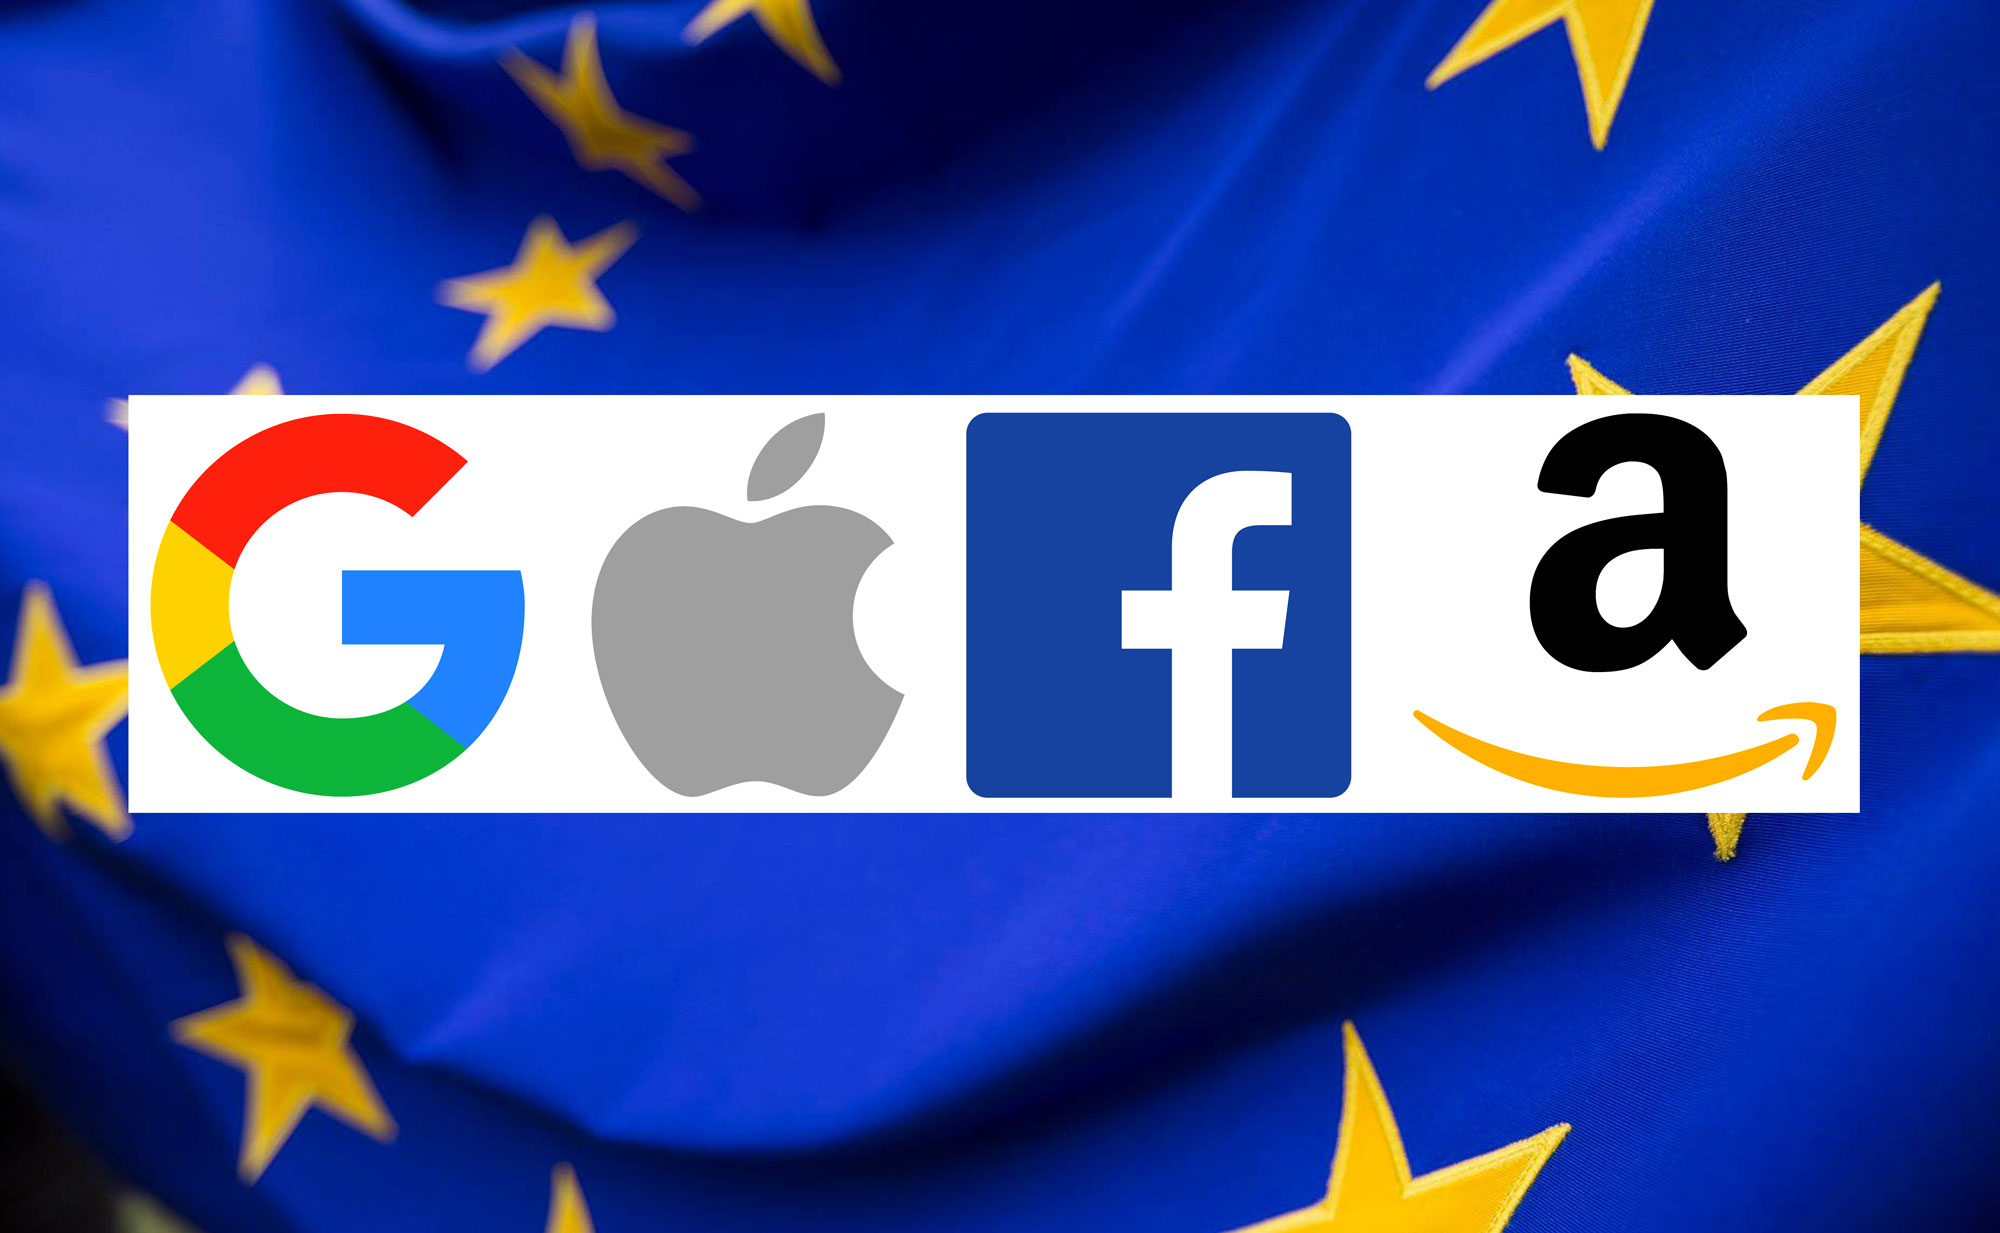 GAFA logos Google, Apple, Facebook, Amazon Europe